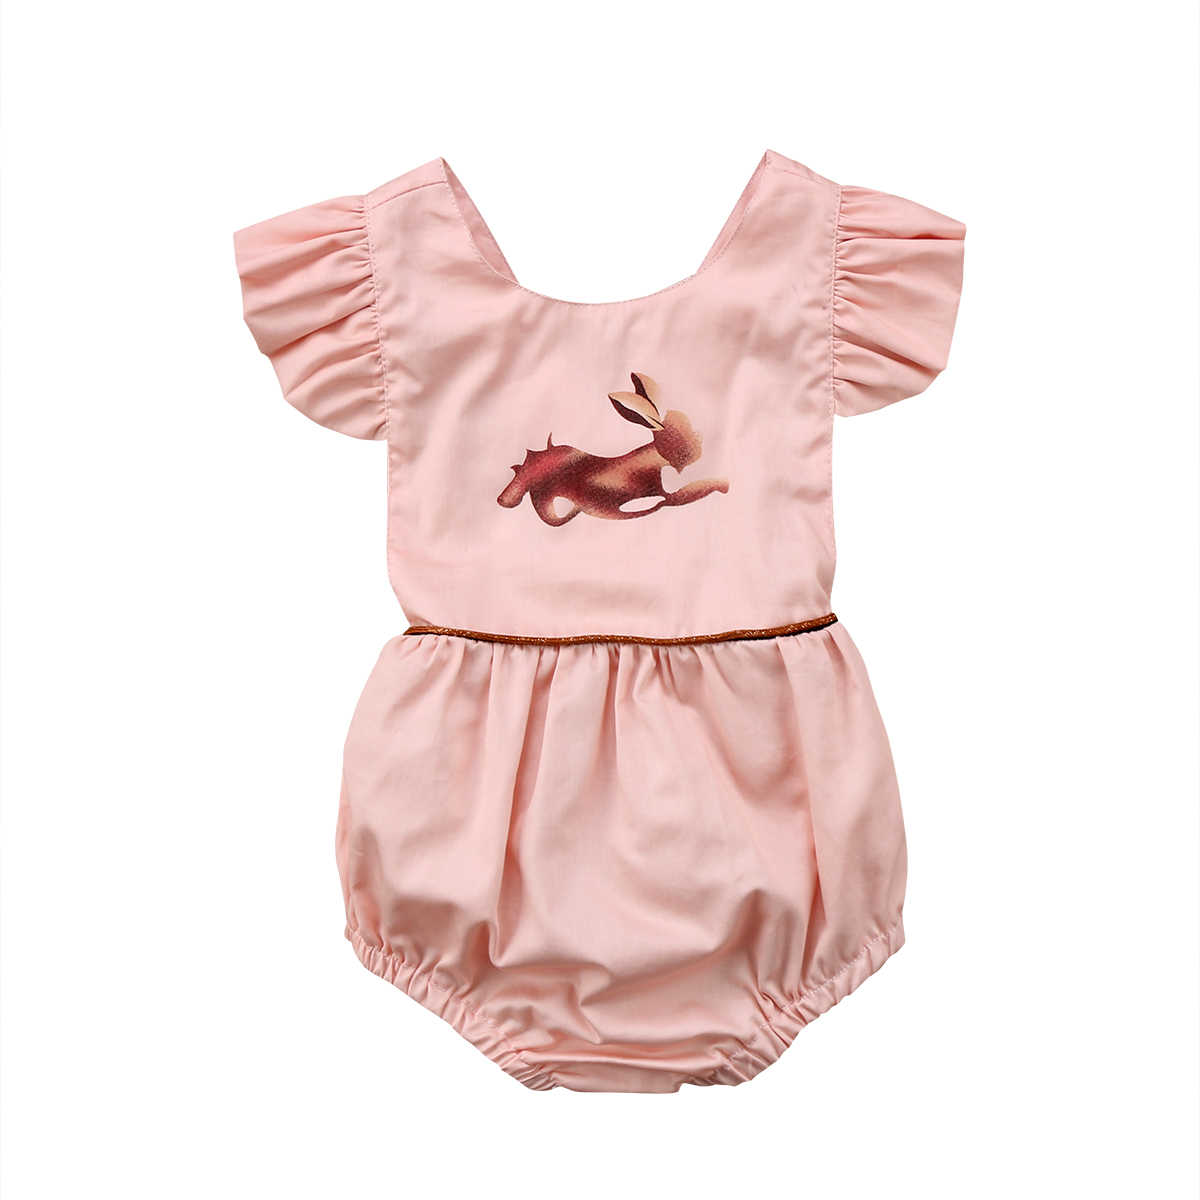 7ae6beef4ec Infant Baby Girls Bunny Romper 2018 Ruffles Jumpsuit Newborn Baby Girls  Cotton Sunsuit Easter Outfits Children